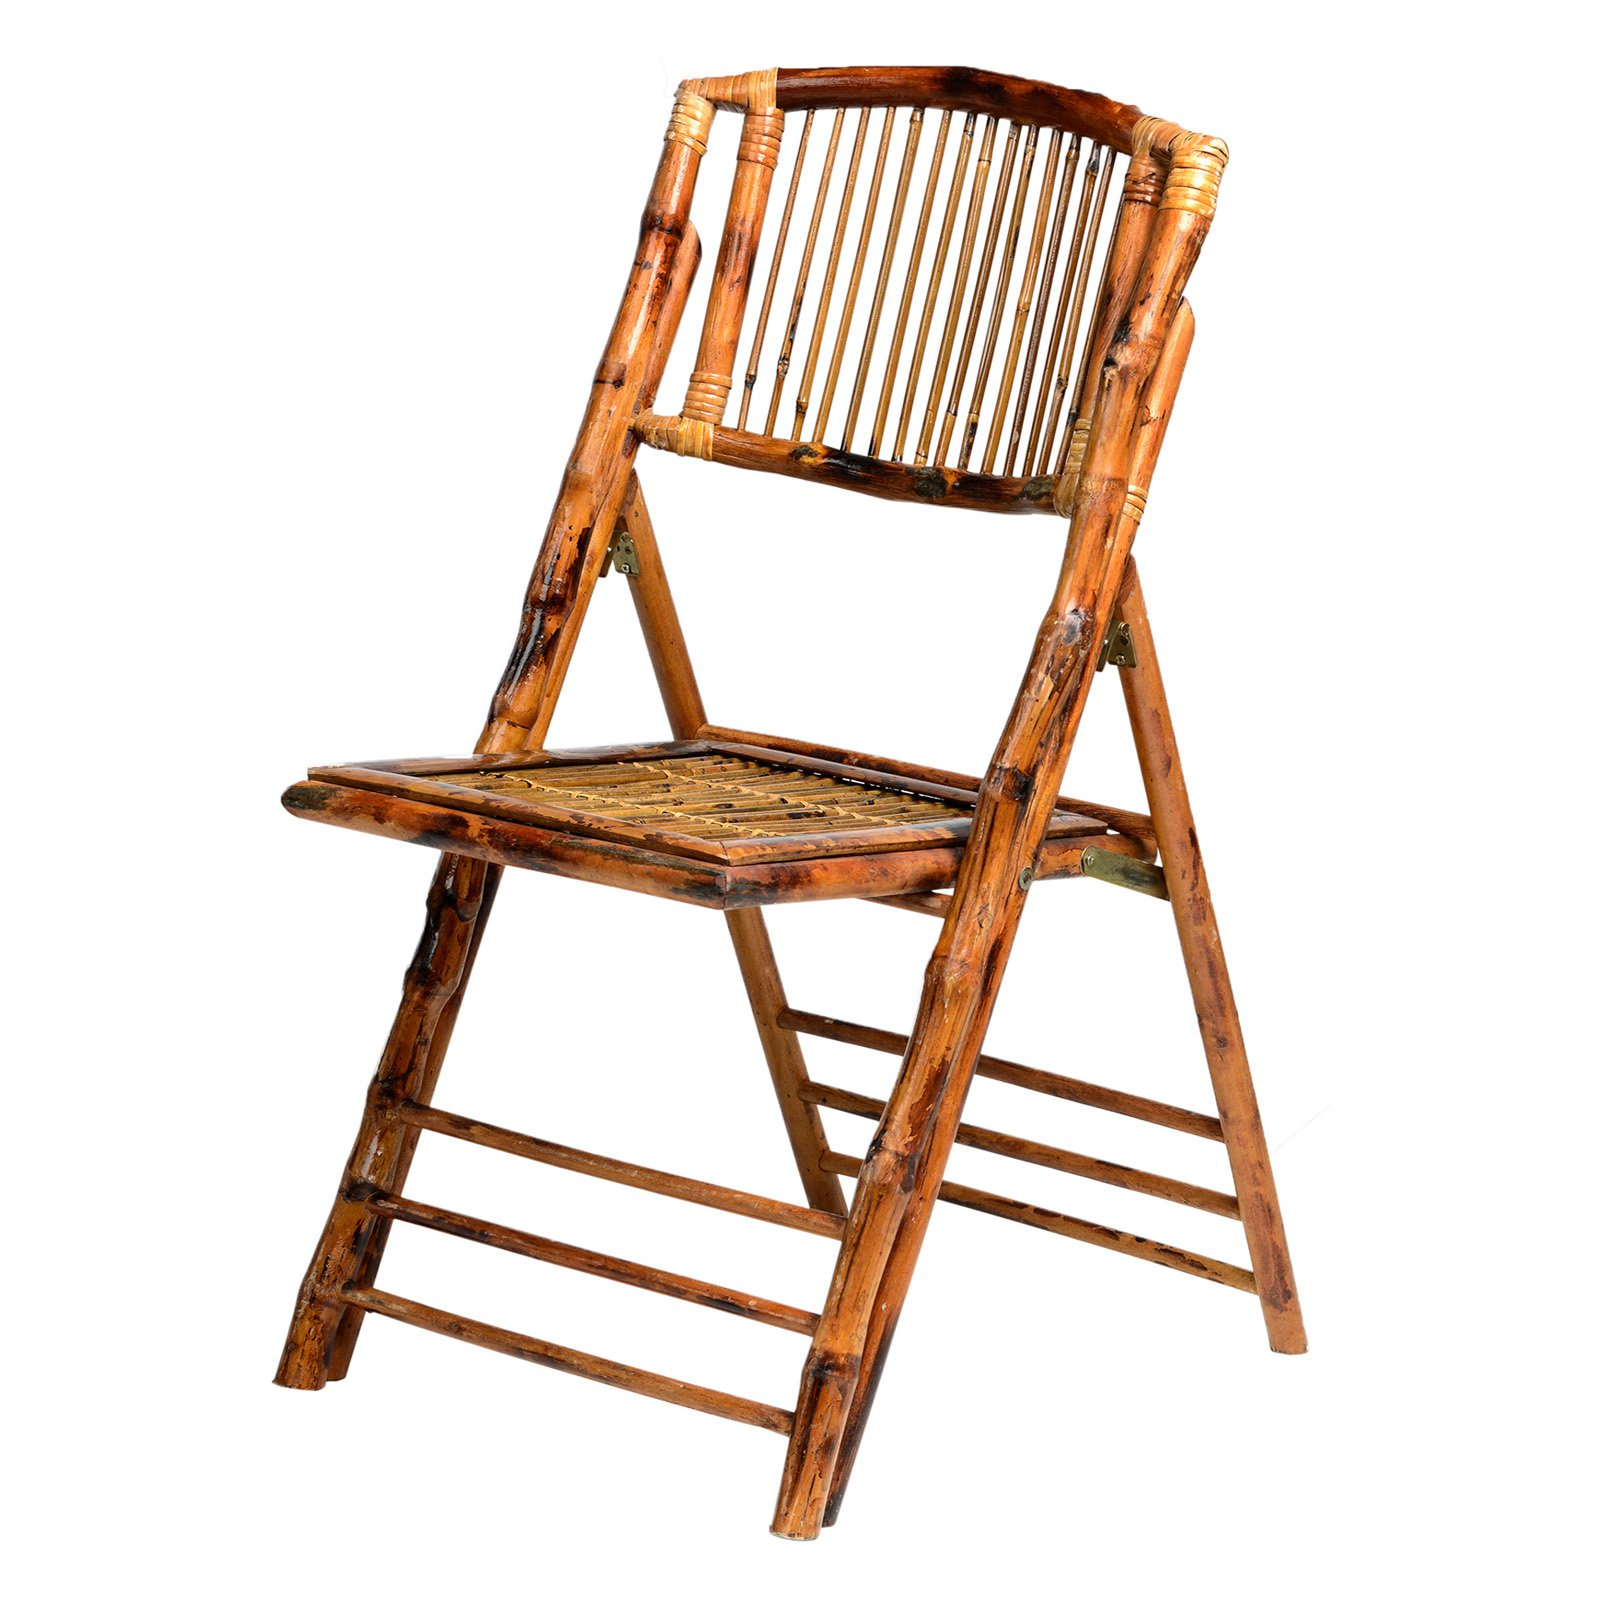 Exceptionnel Commercial Seating Products American Classic Bamboo Folding Chair